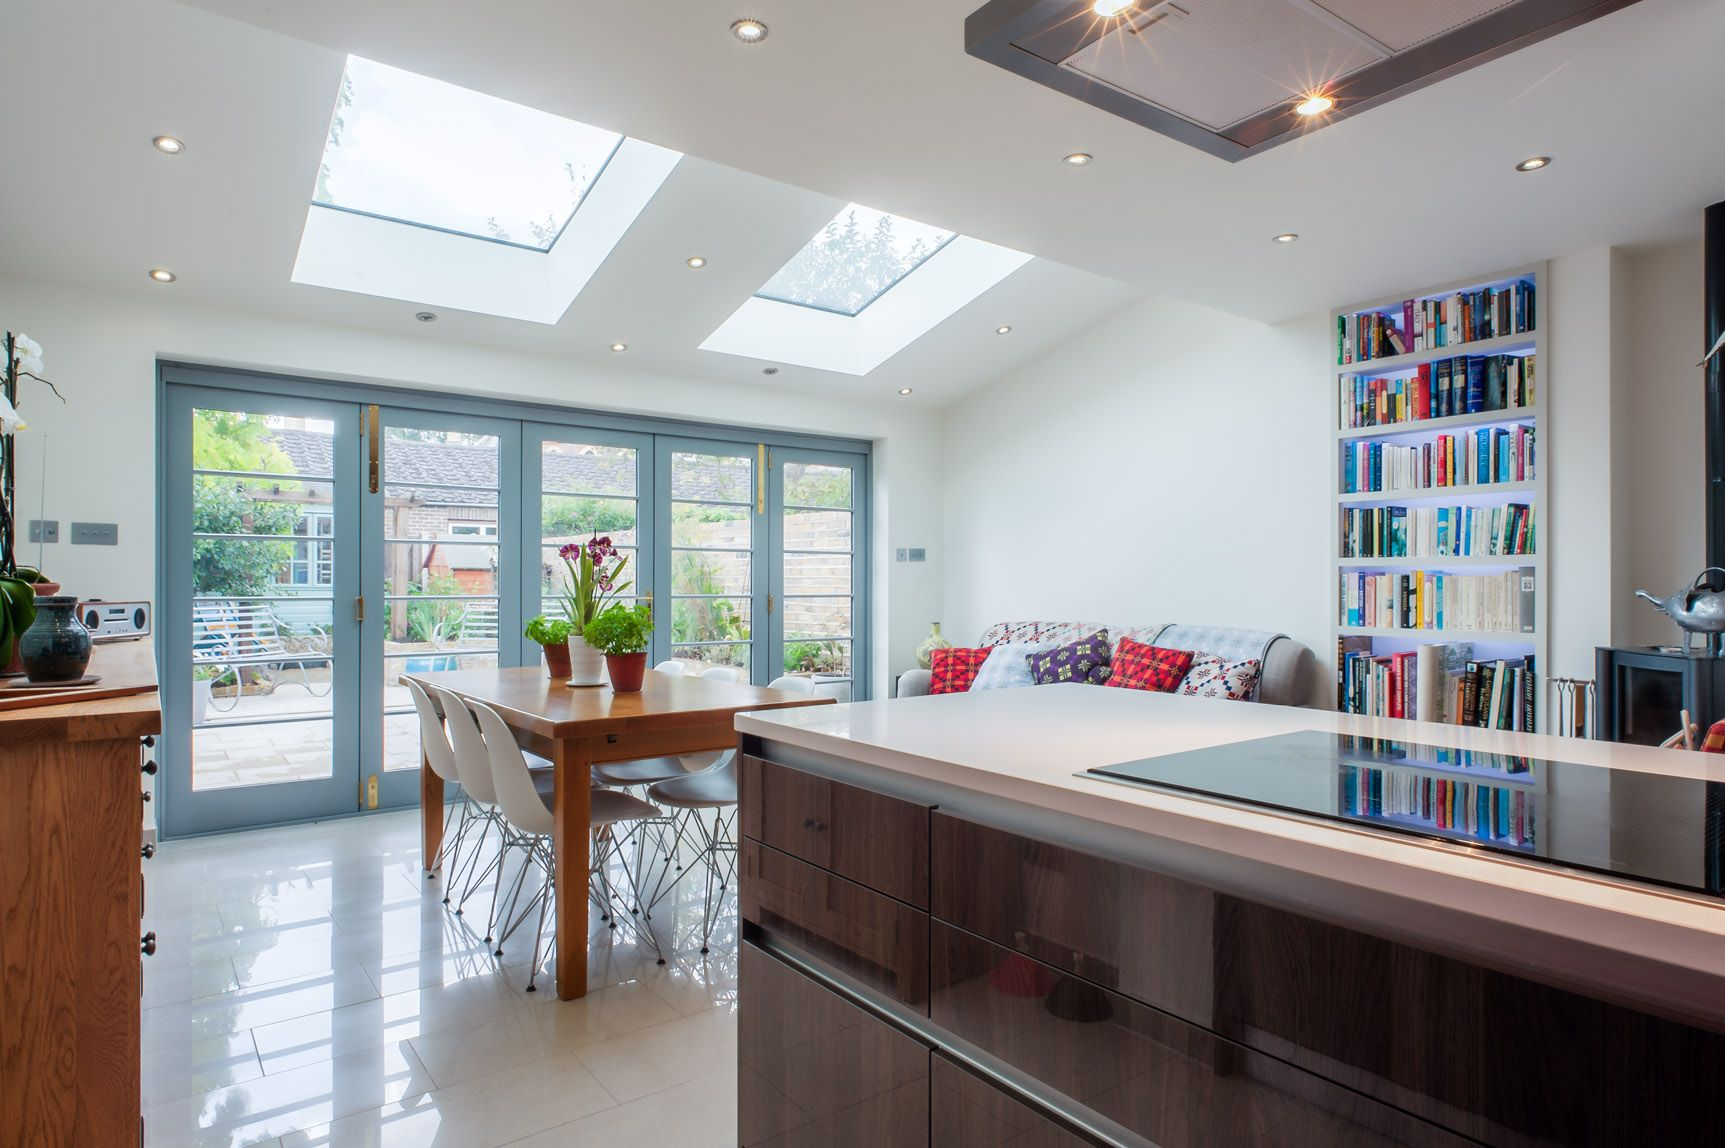 Lovely Doors in H&G Kitchen extension | Upvc Traditional Style ...